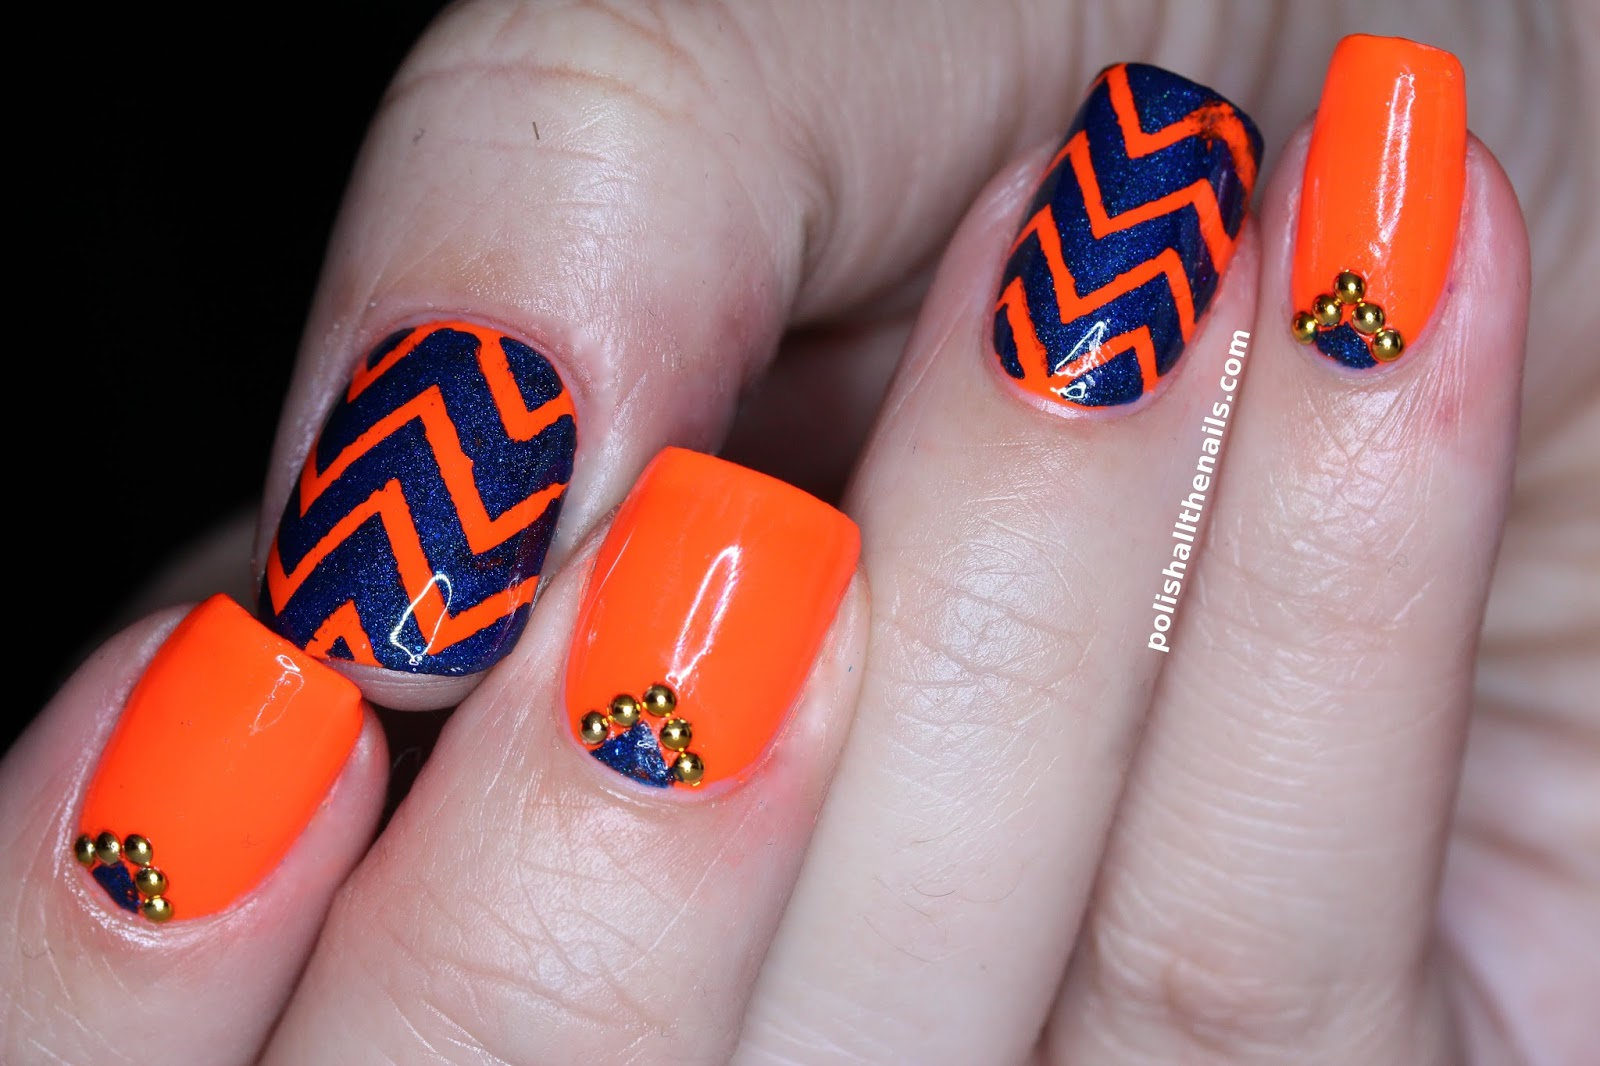 Nails - Tagged with: chevron nails, zig zag chevron nails, zig zag